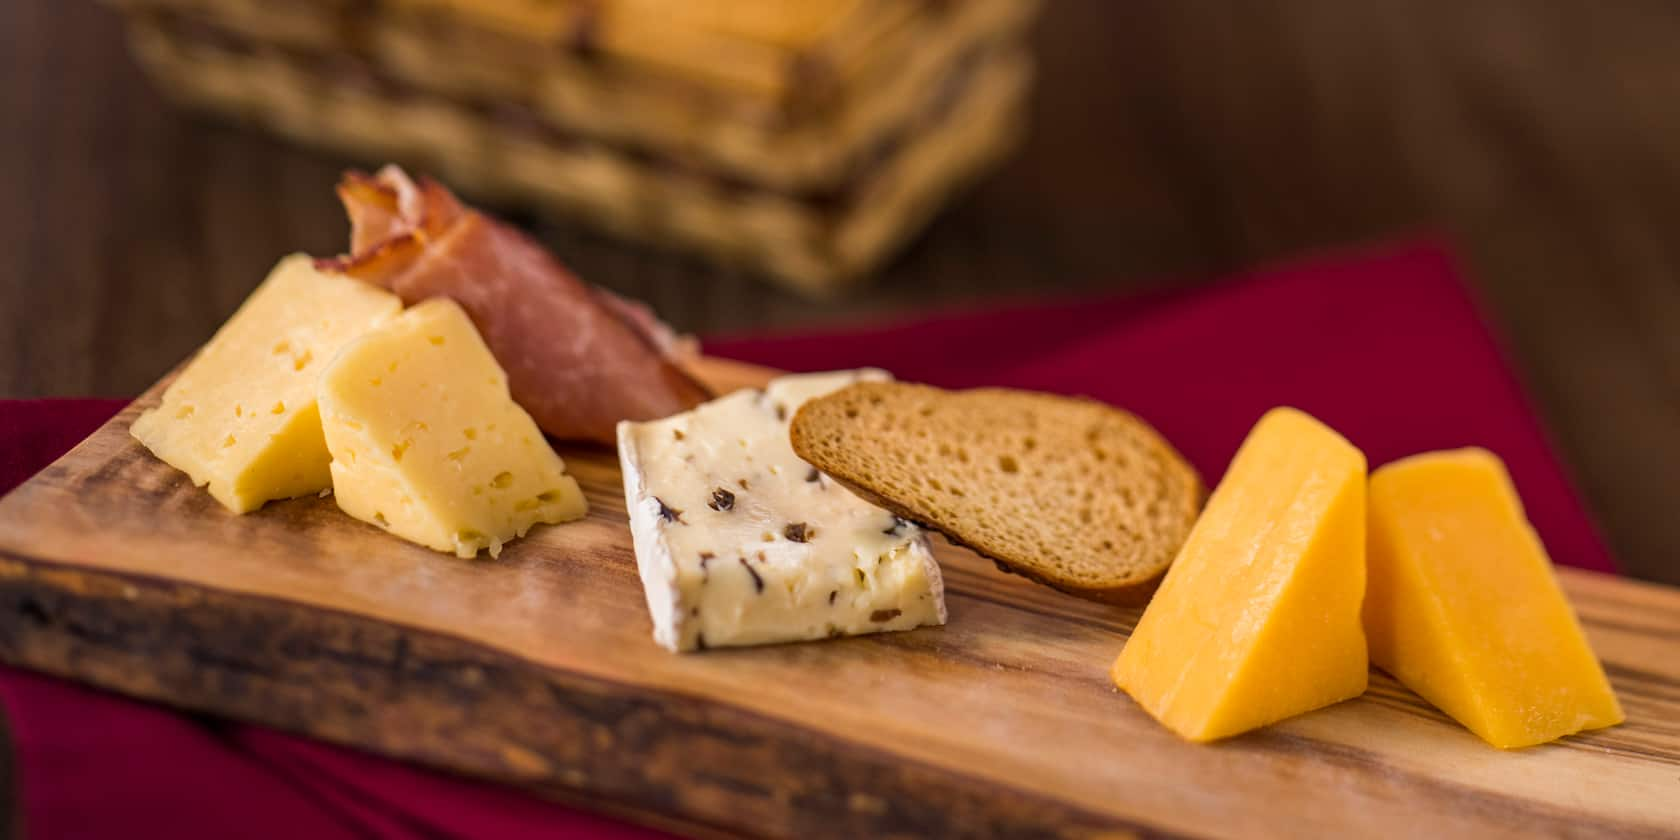 A selection of cheeses and crackers displayed on a wooden board